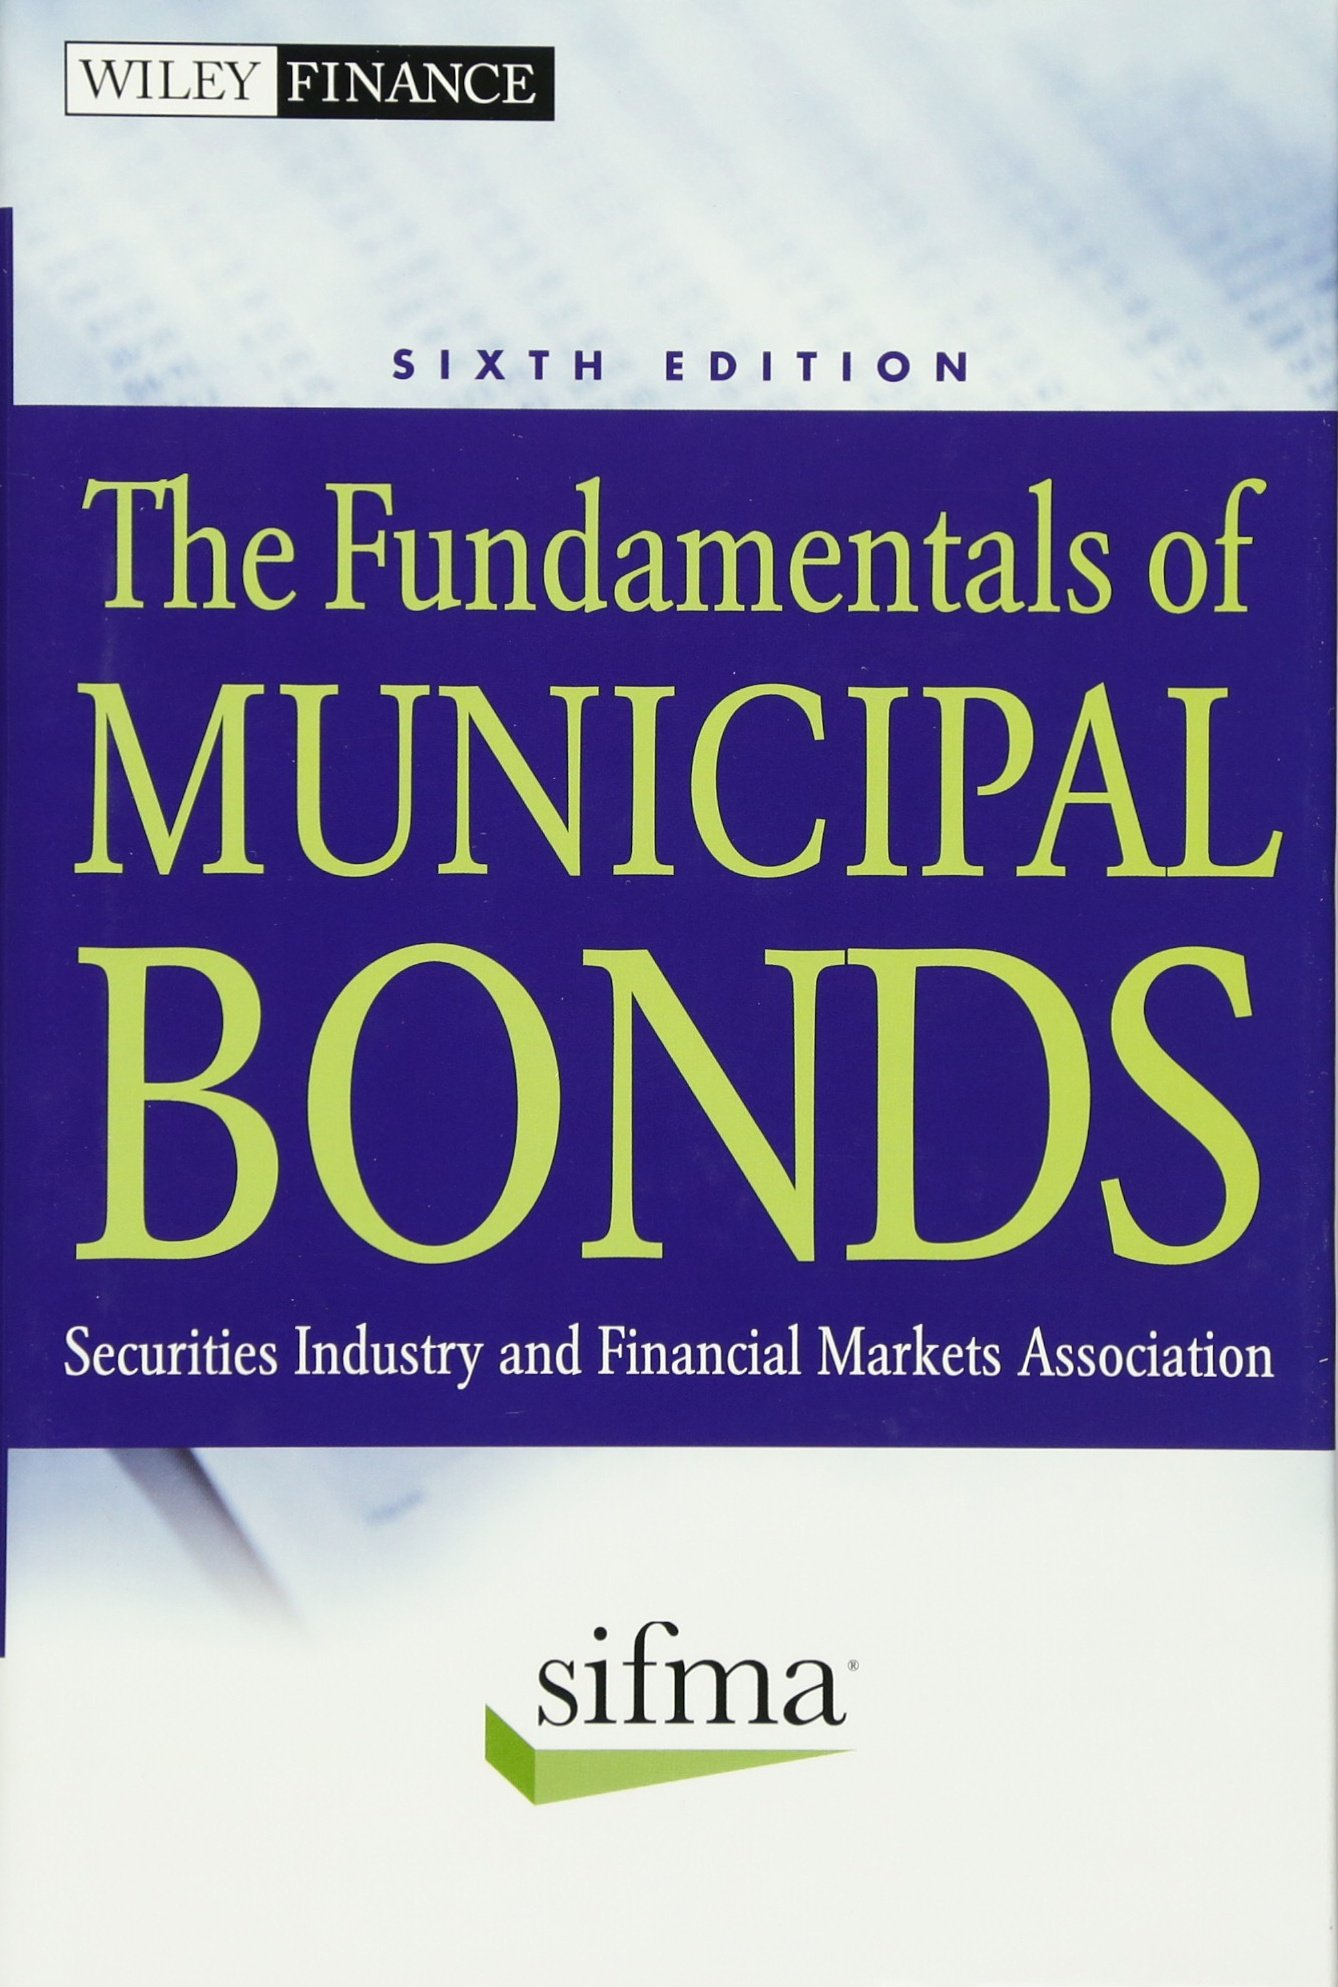 The Fundamentals of Municipal Bonds by Brand: Wiley